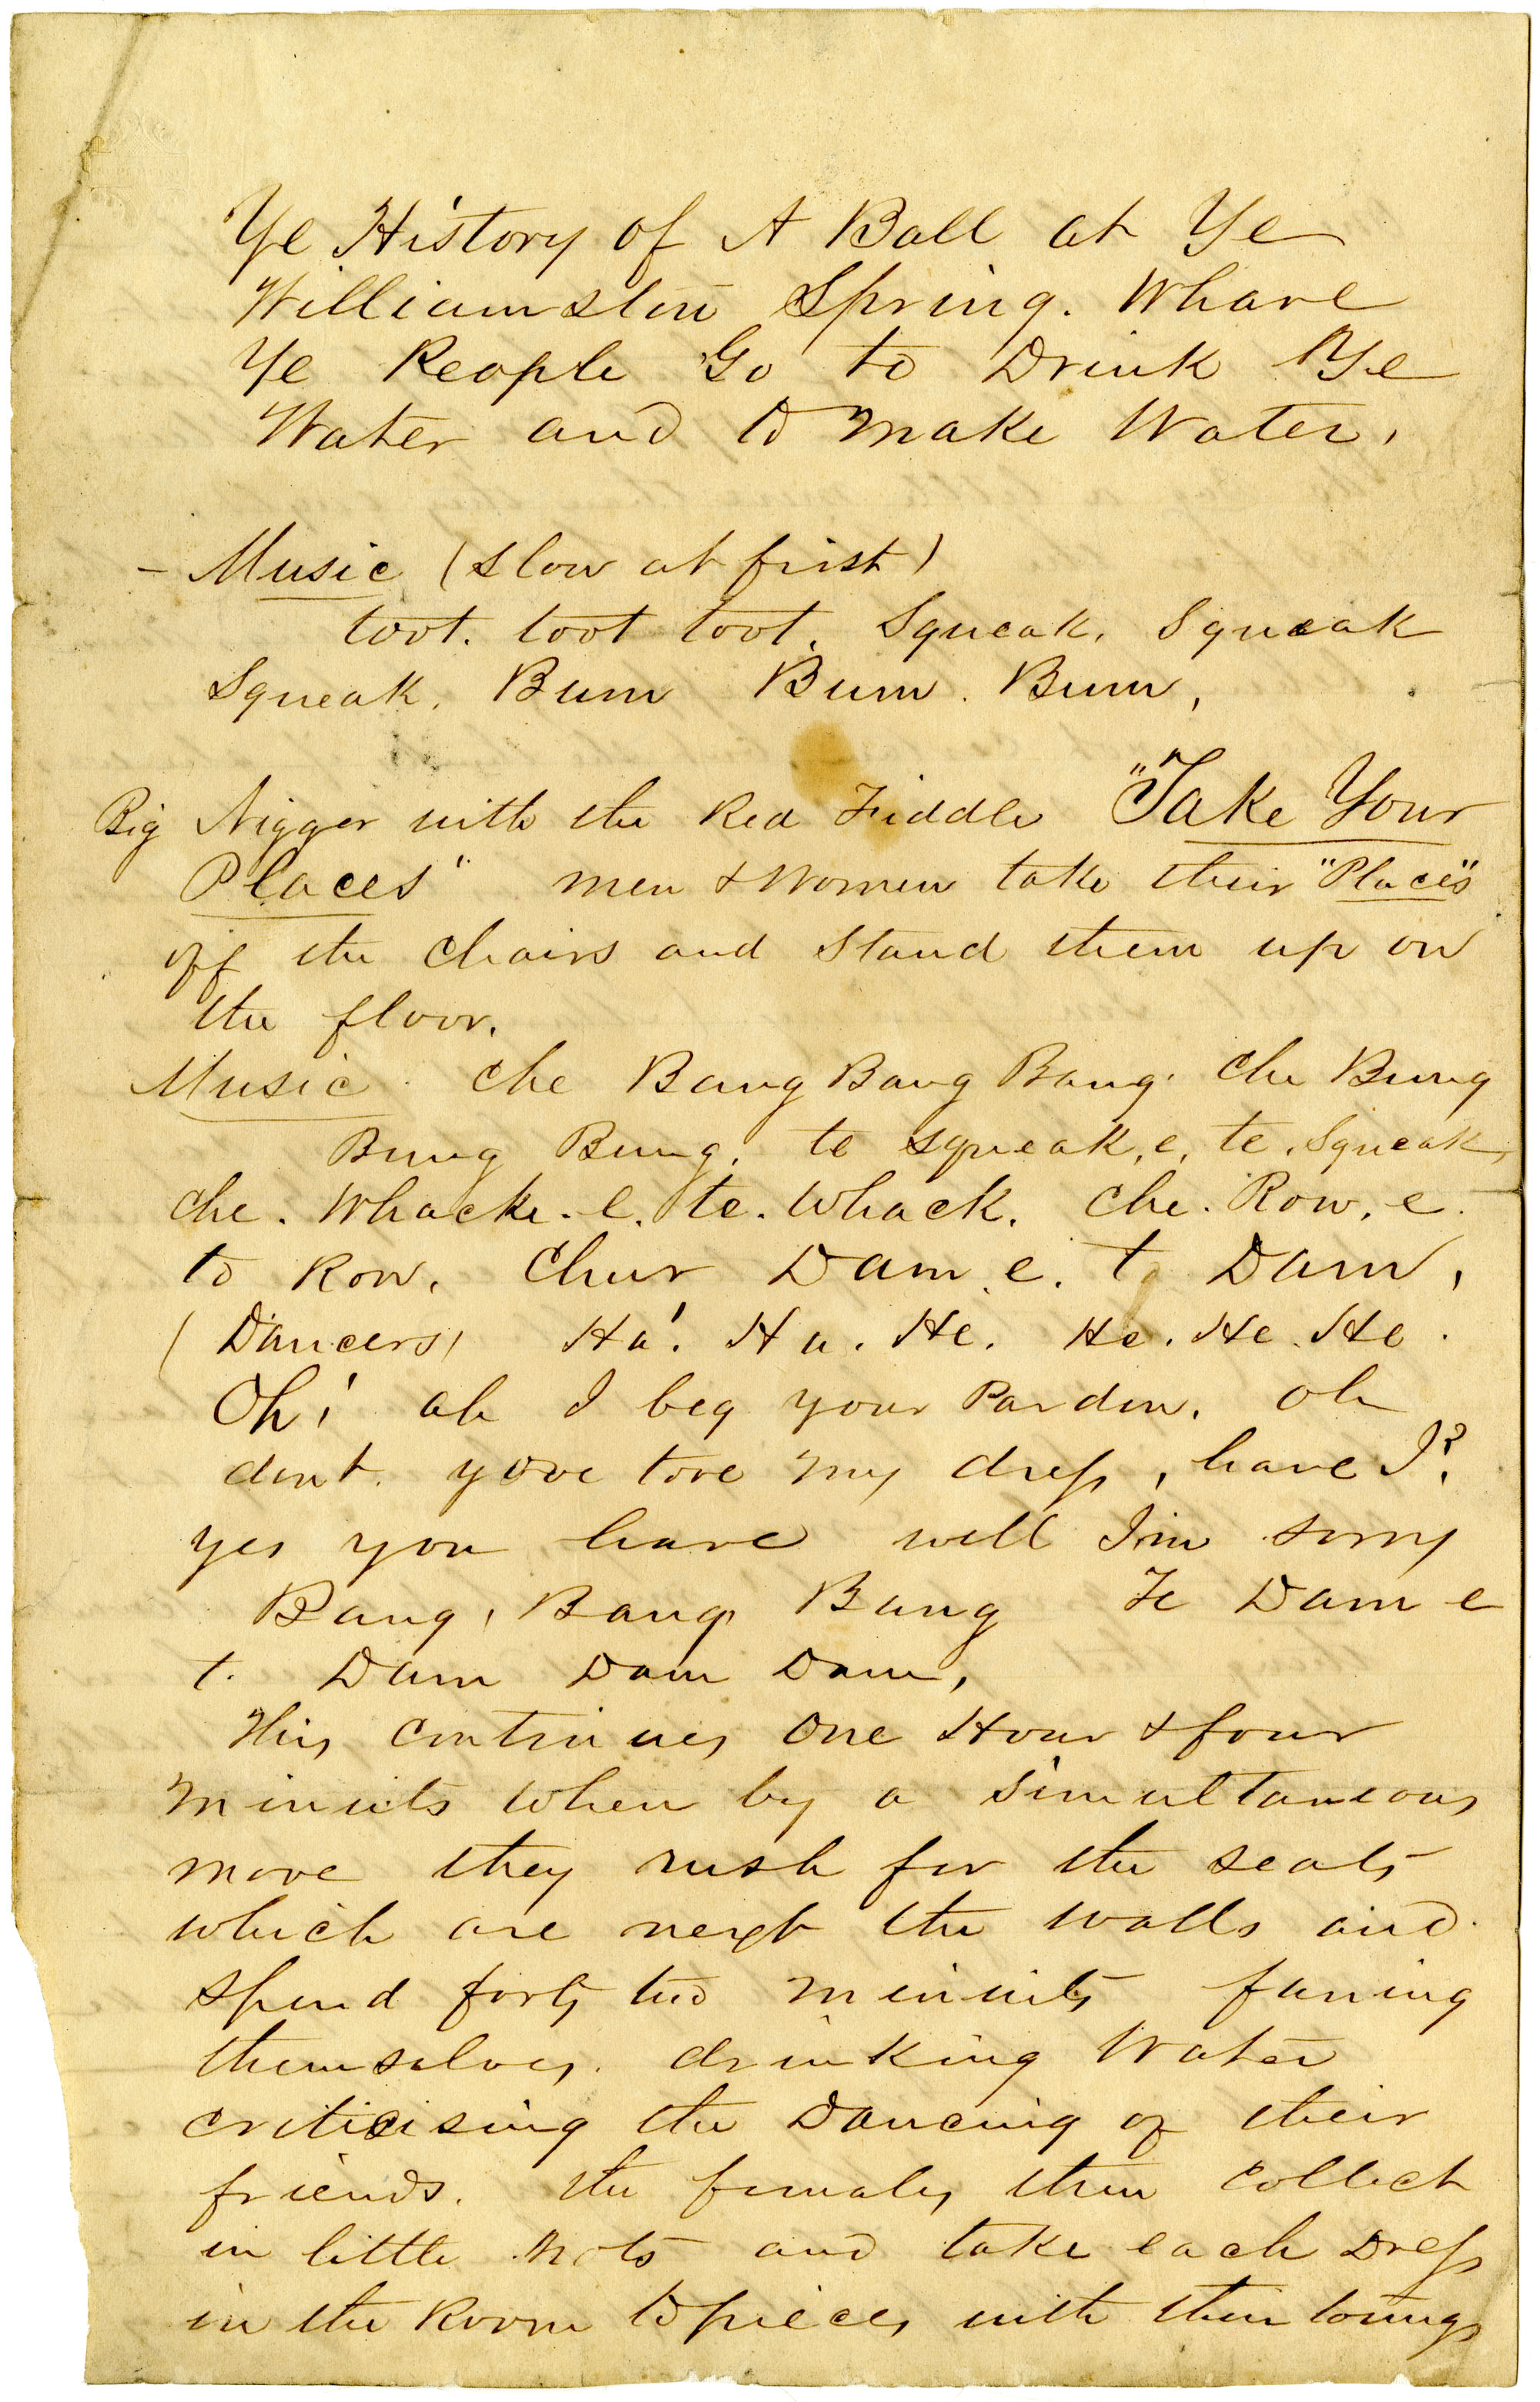 Letter from John R. Beaty to James H. Norman, Part III, August 1860